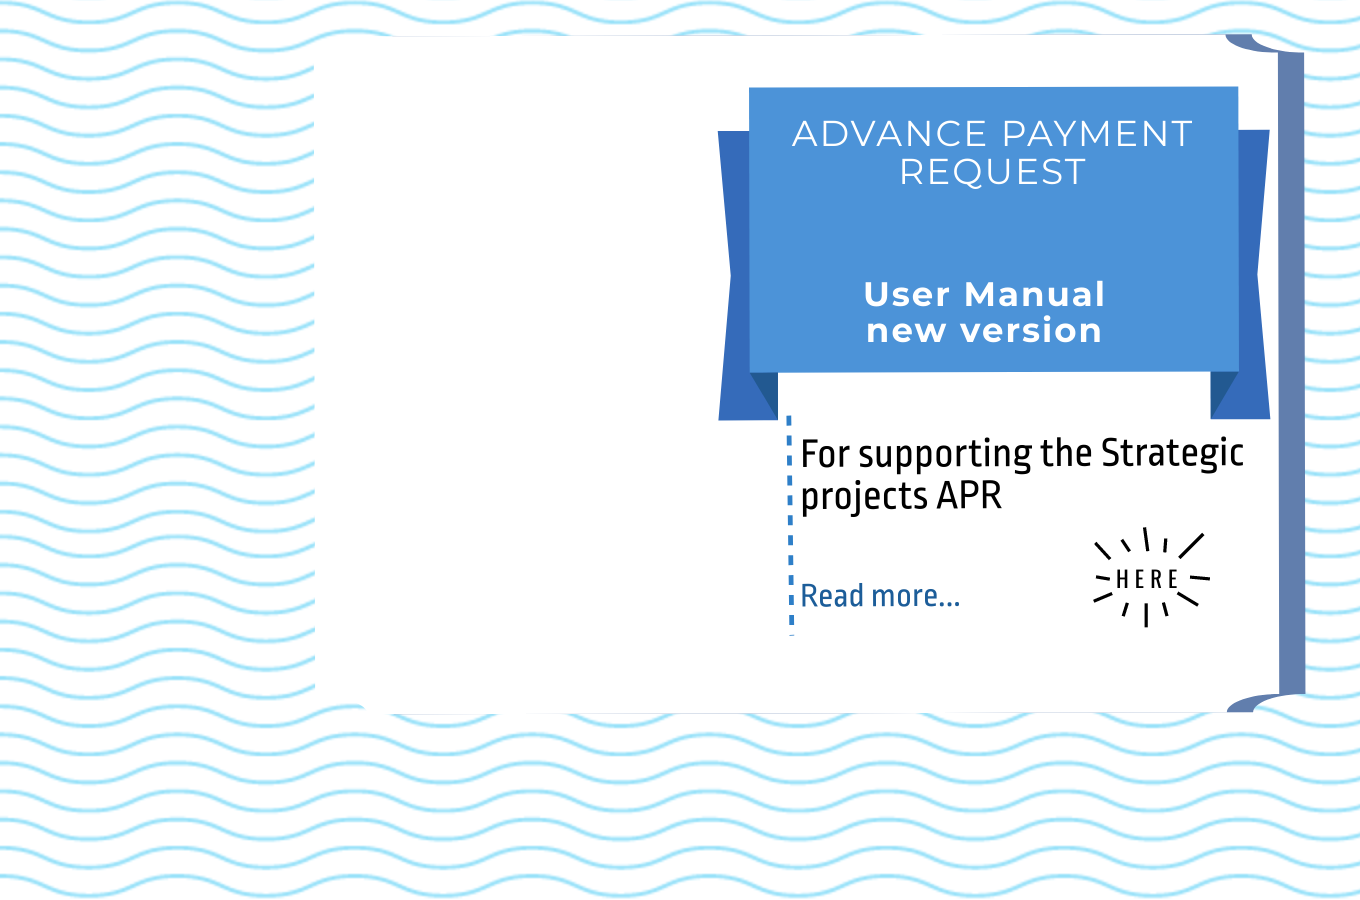 Advance Payment Request - User Manual